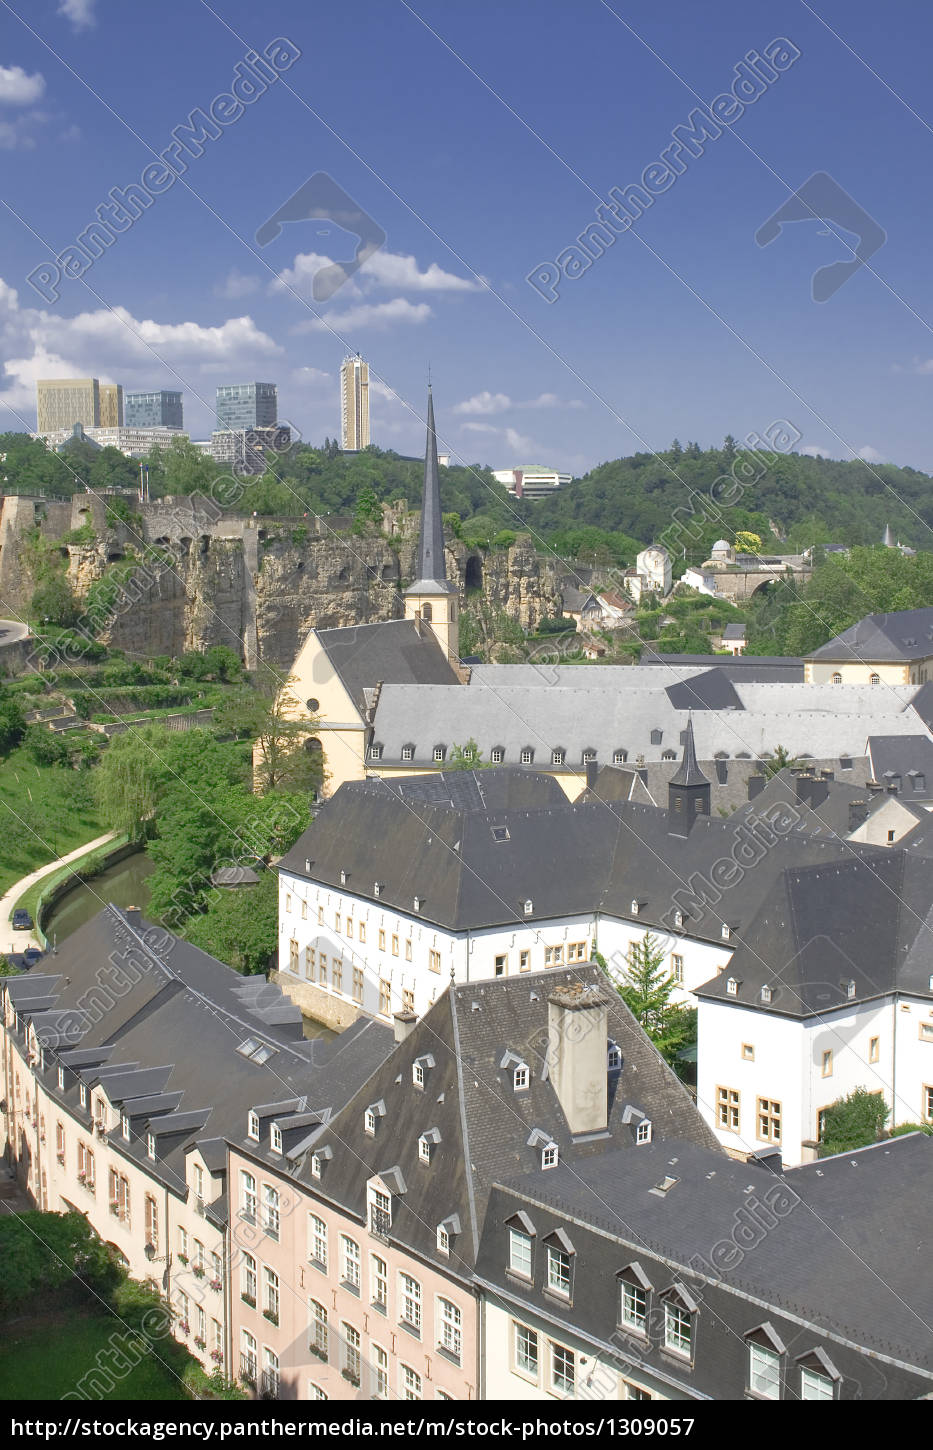 luxembourg, city - 1309057